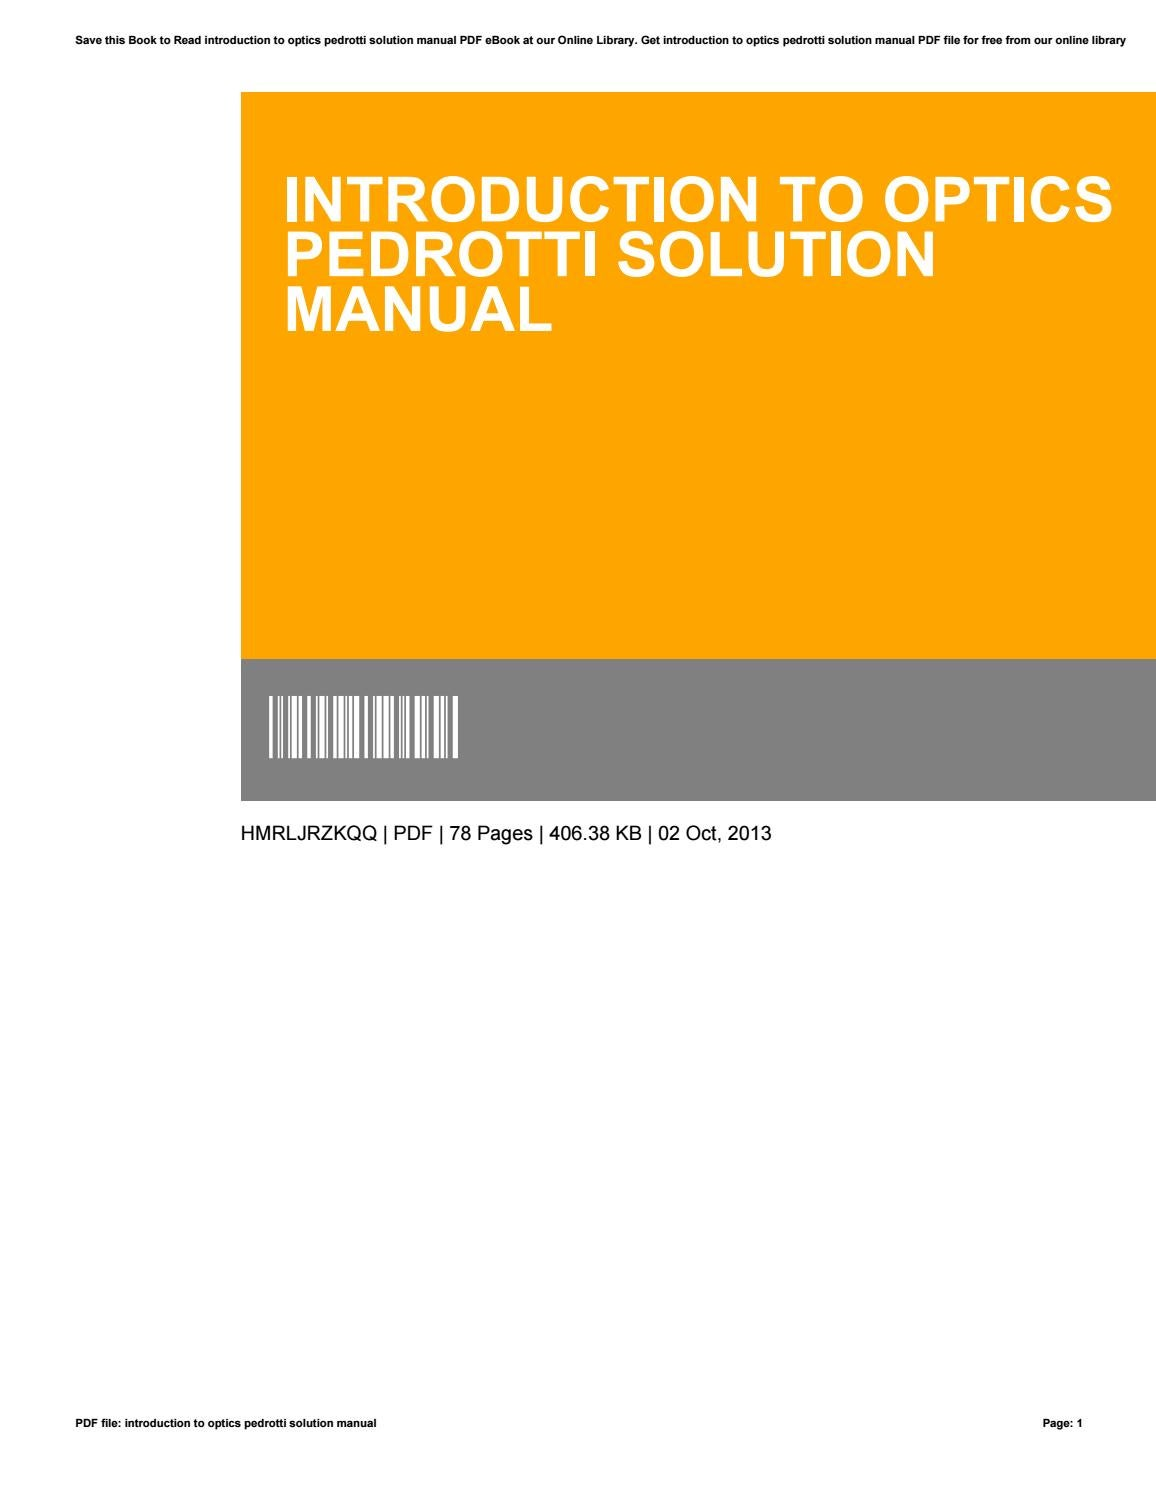 Introduction to optics pedrotti solution manual by PhyllisClayborne2528 -  issuu